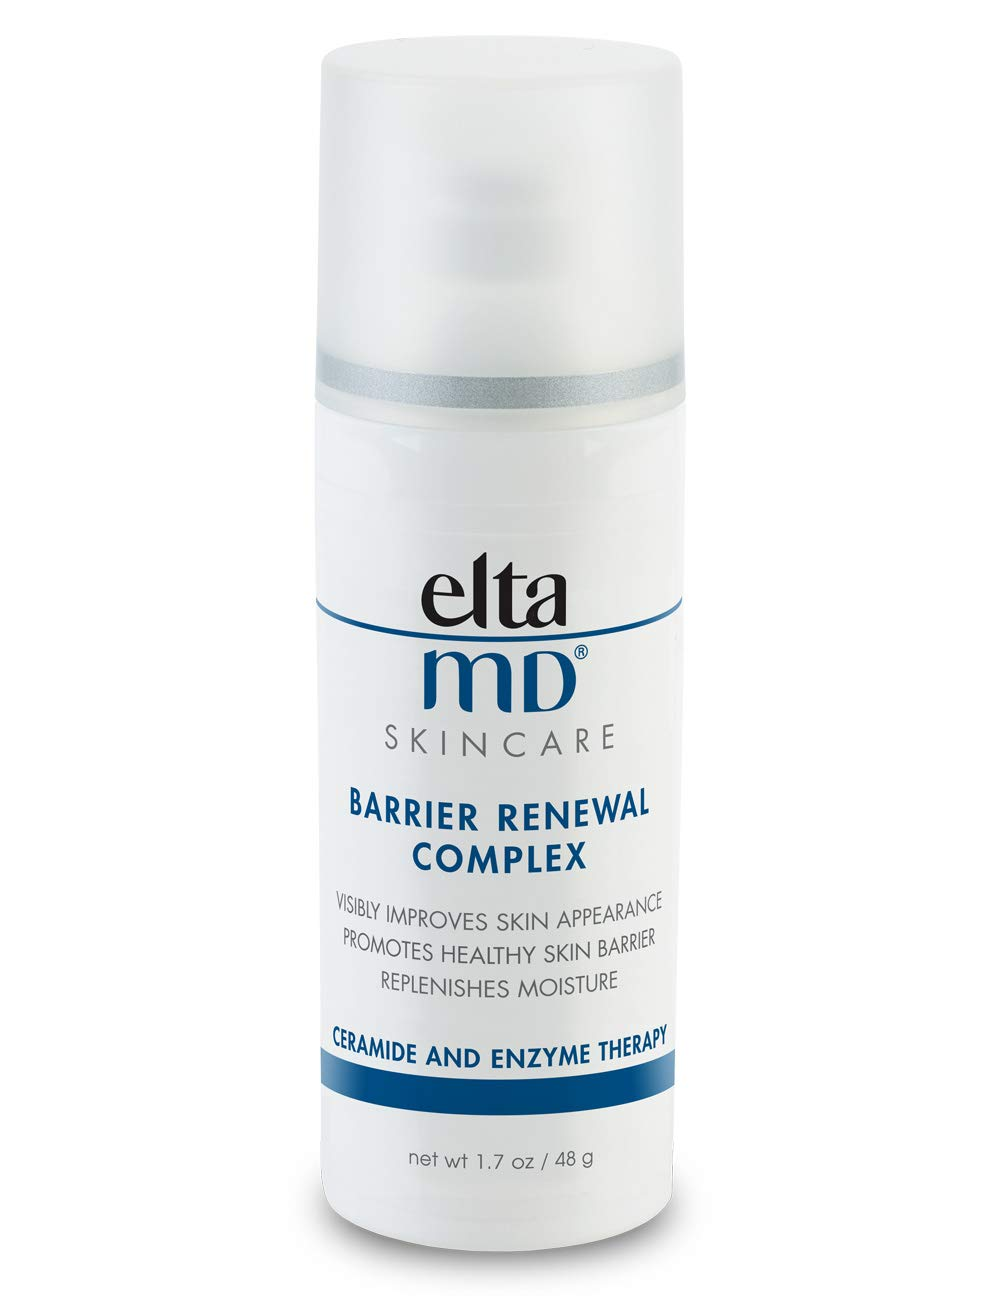 EltaMD Barrier Renewal Complex Face Moisturizer with Hyaluronic Acid for Dry Skin, Works to Visibly Minimize Fine Lines and Wrinkles, Hydrating Nightime Face Lotion, 1.7 oz